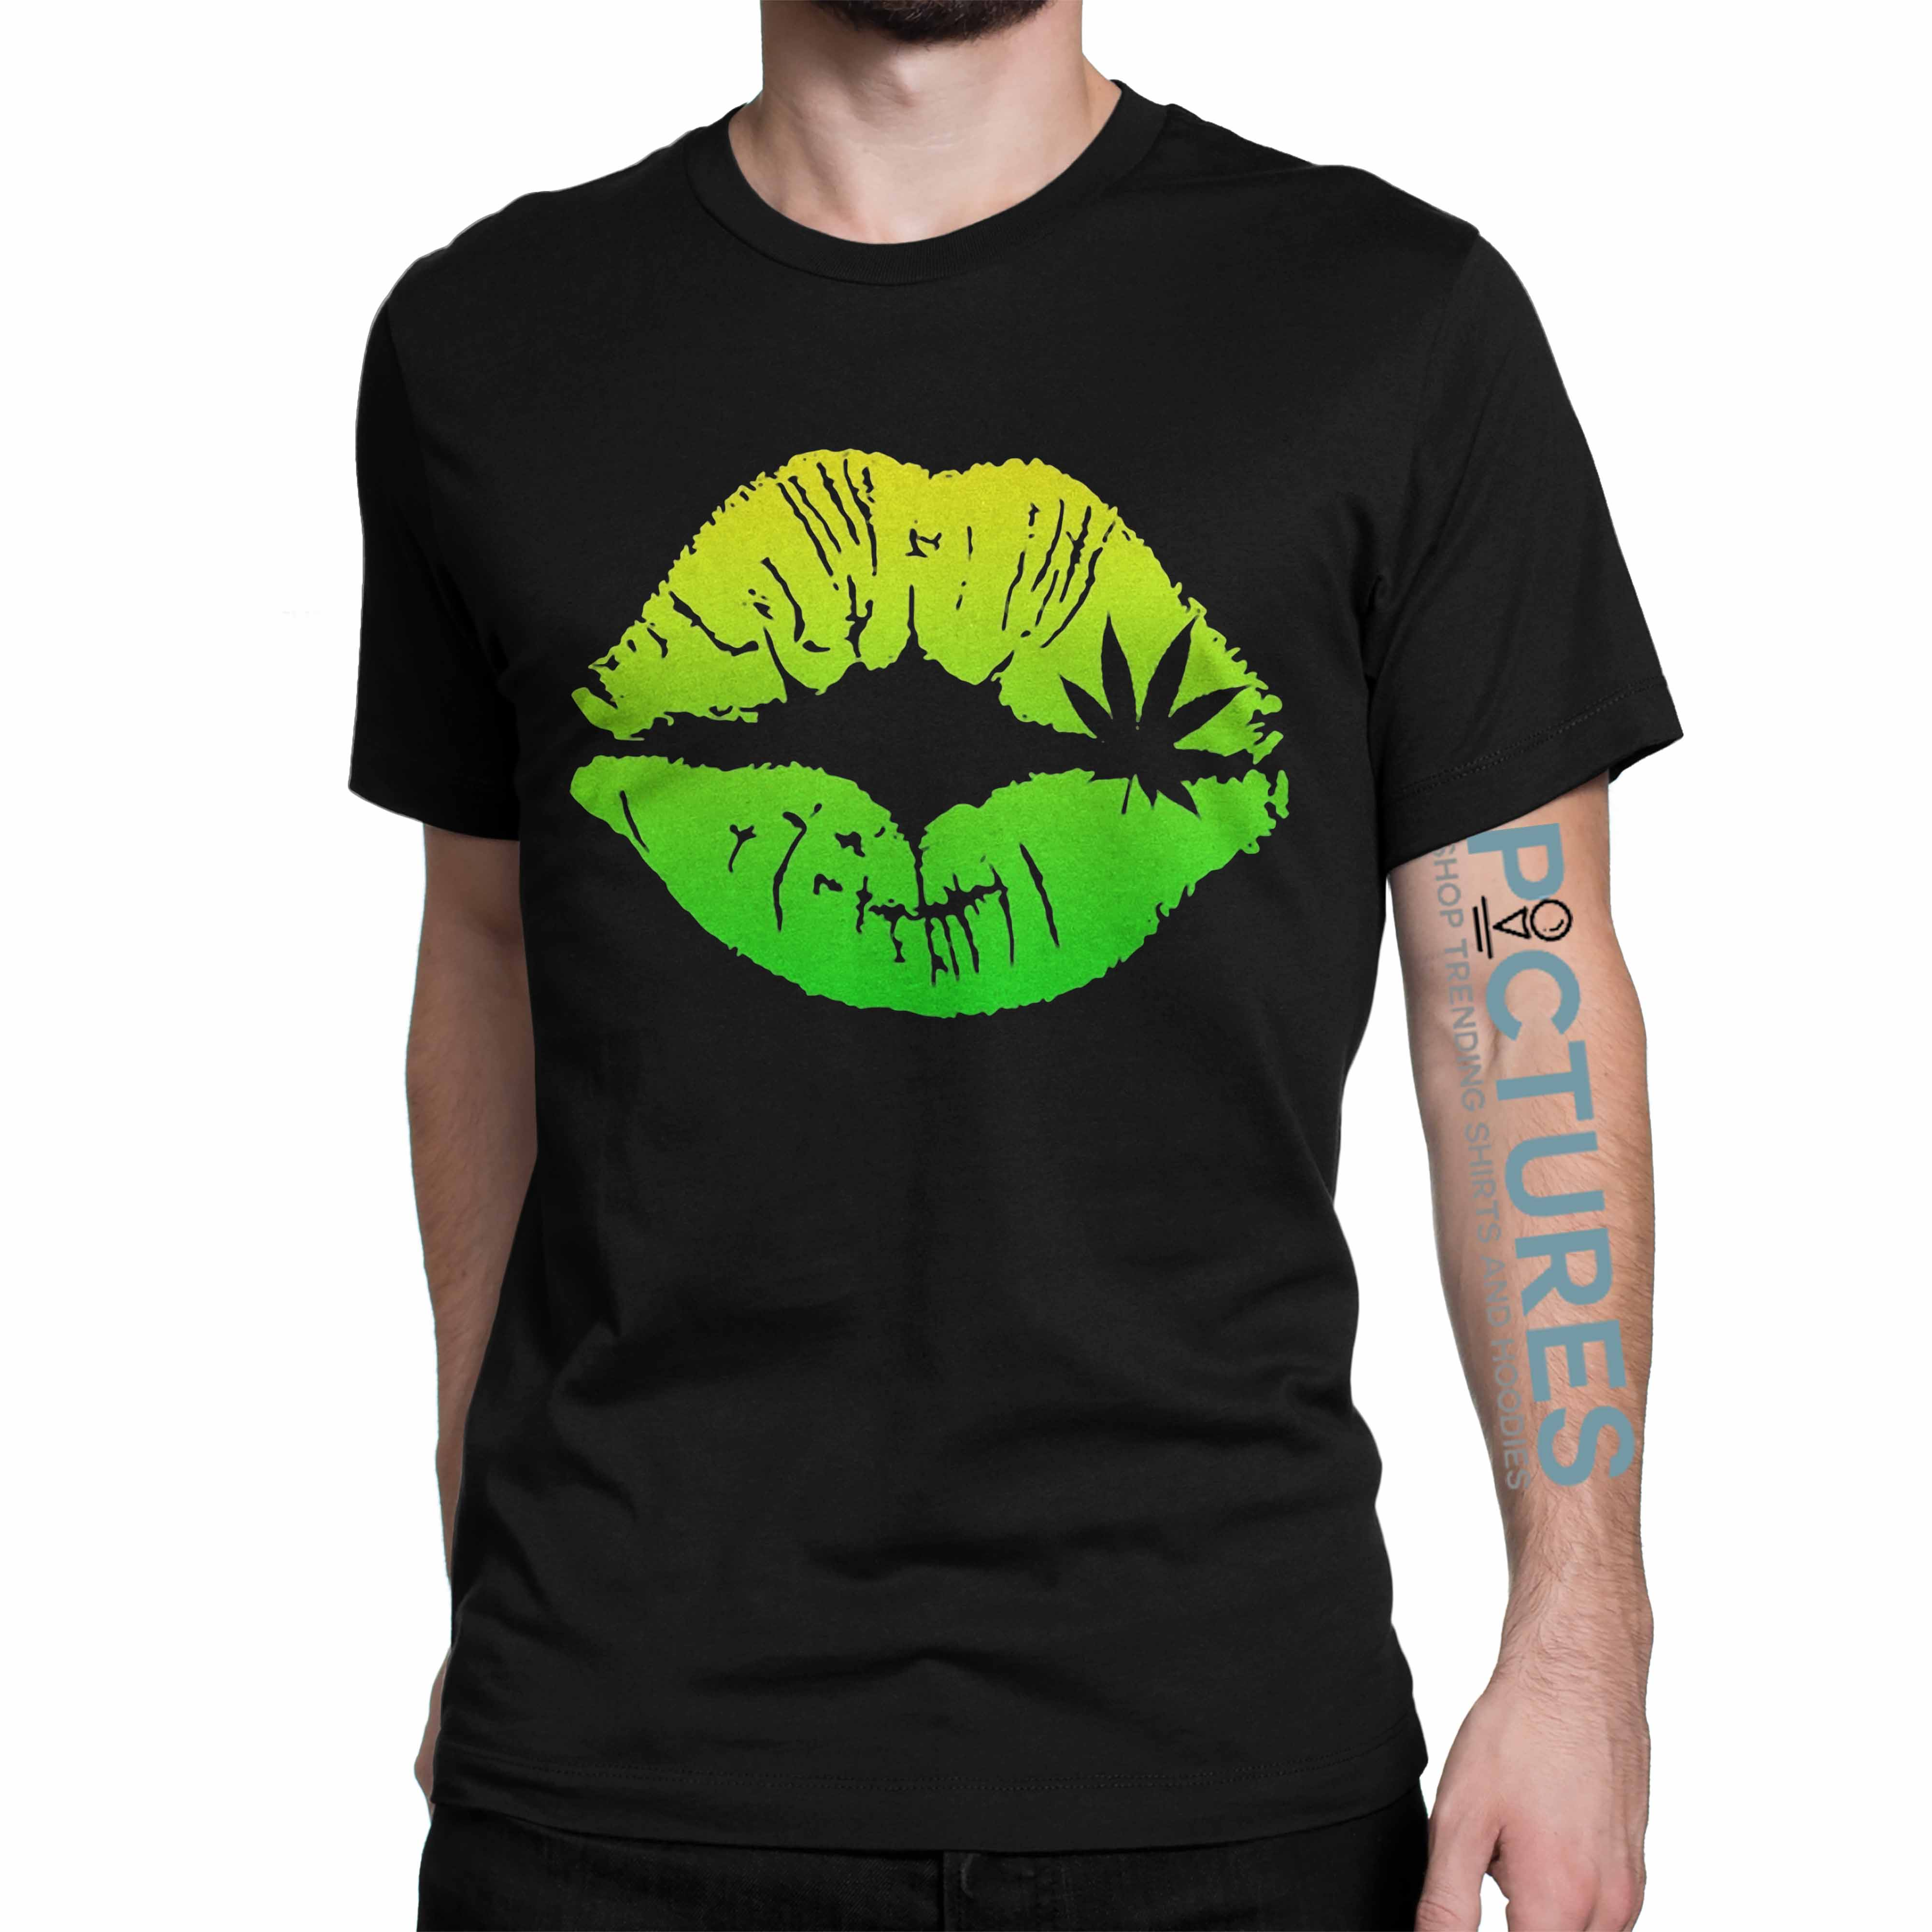 Official Weed Lips shirt